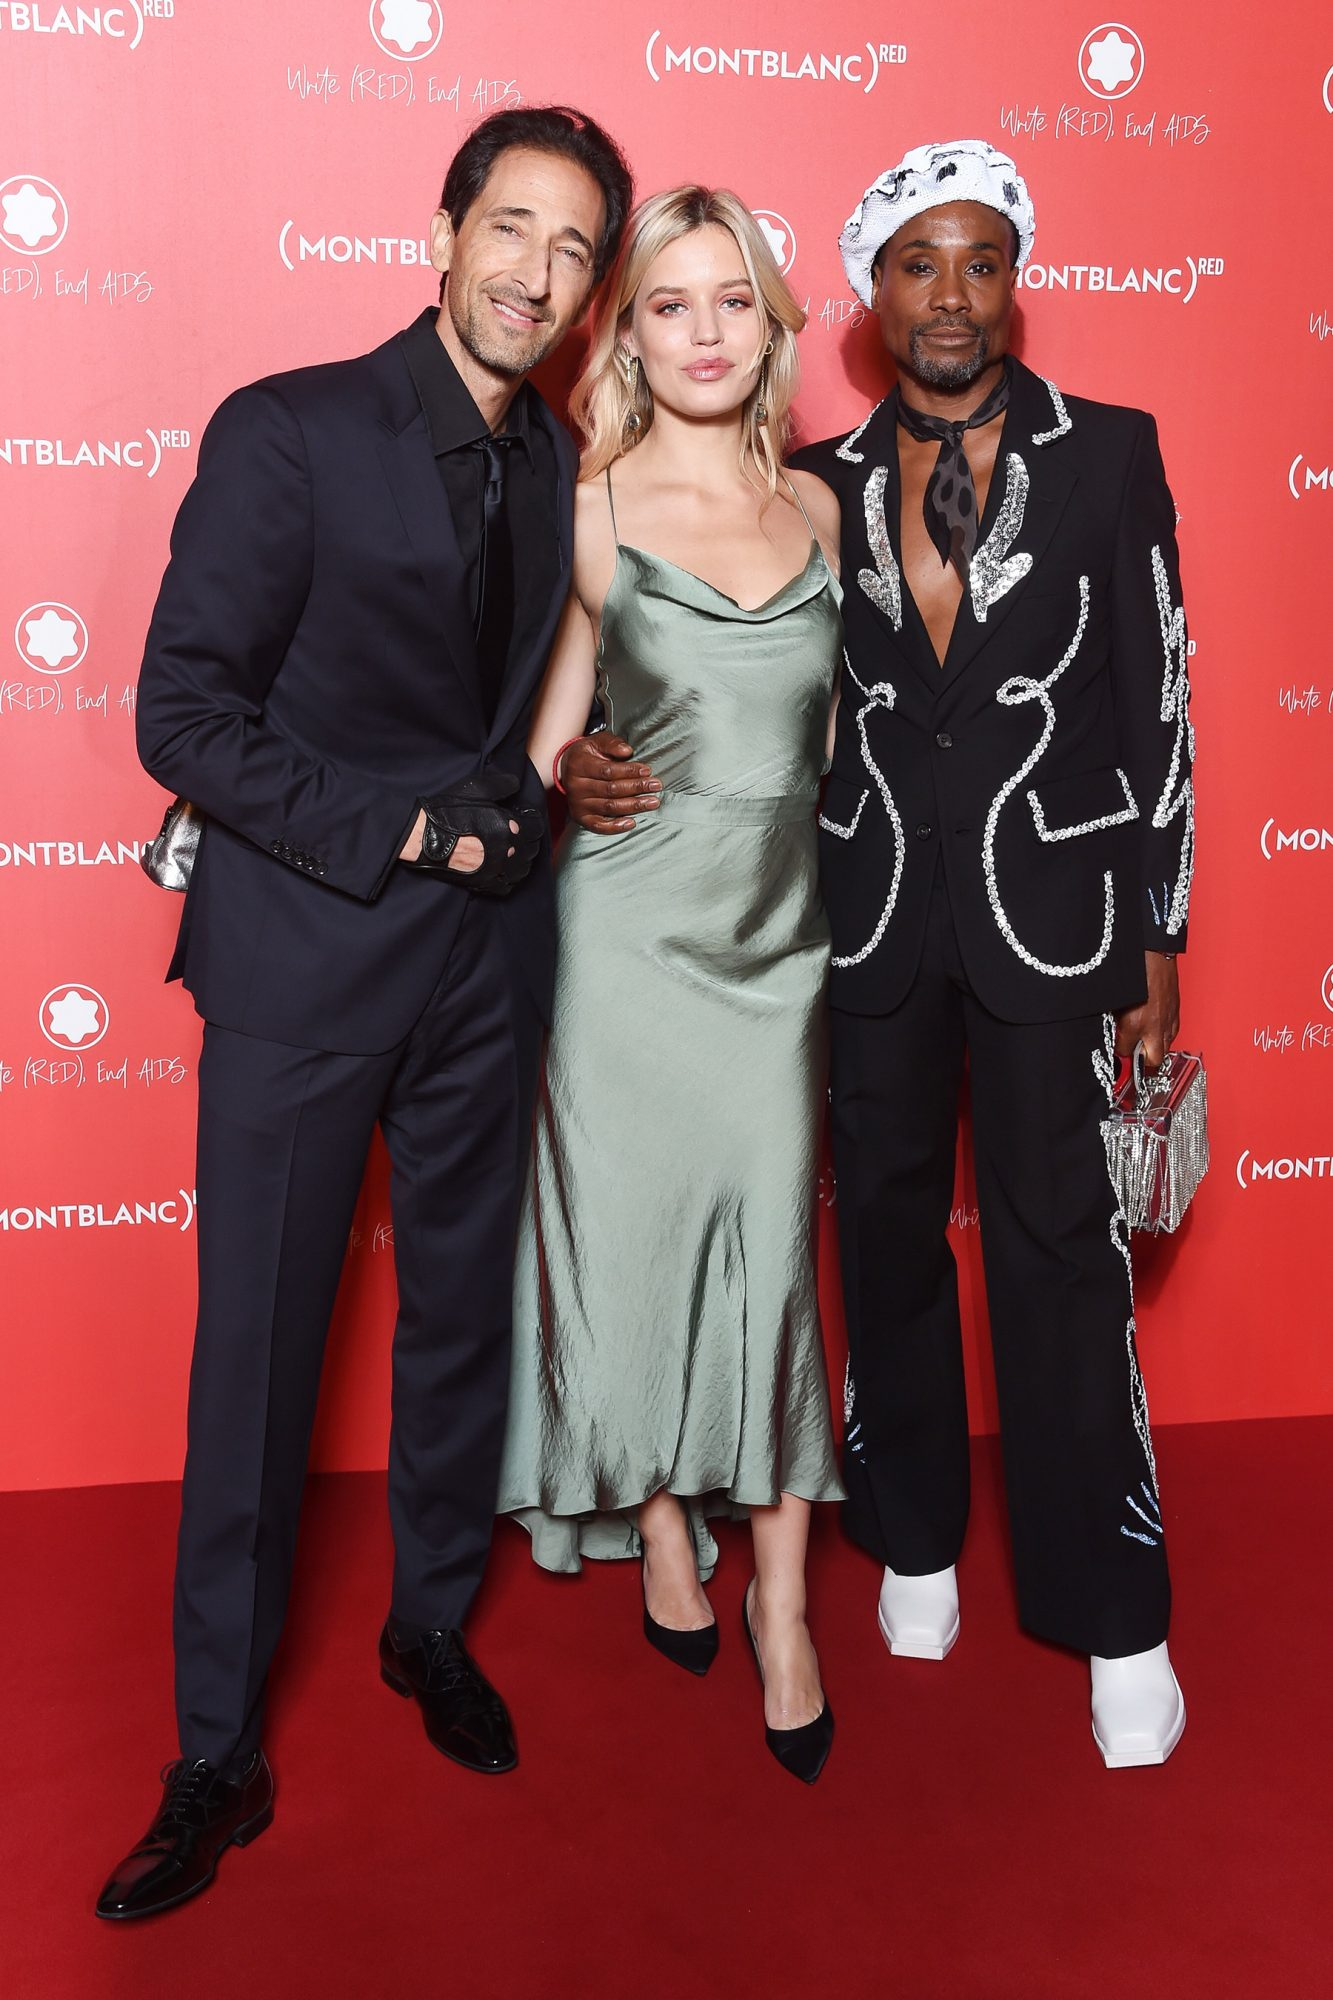 Adrien Brody, Georgia May Jagger and Billy Porter